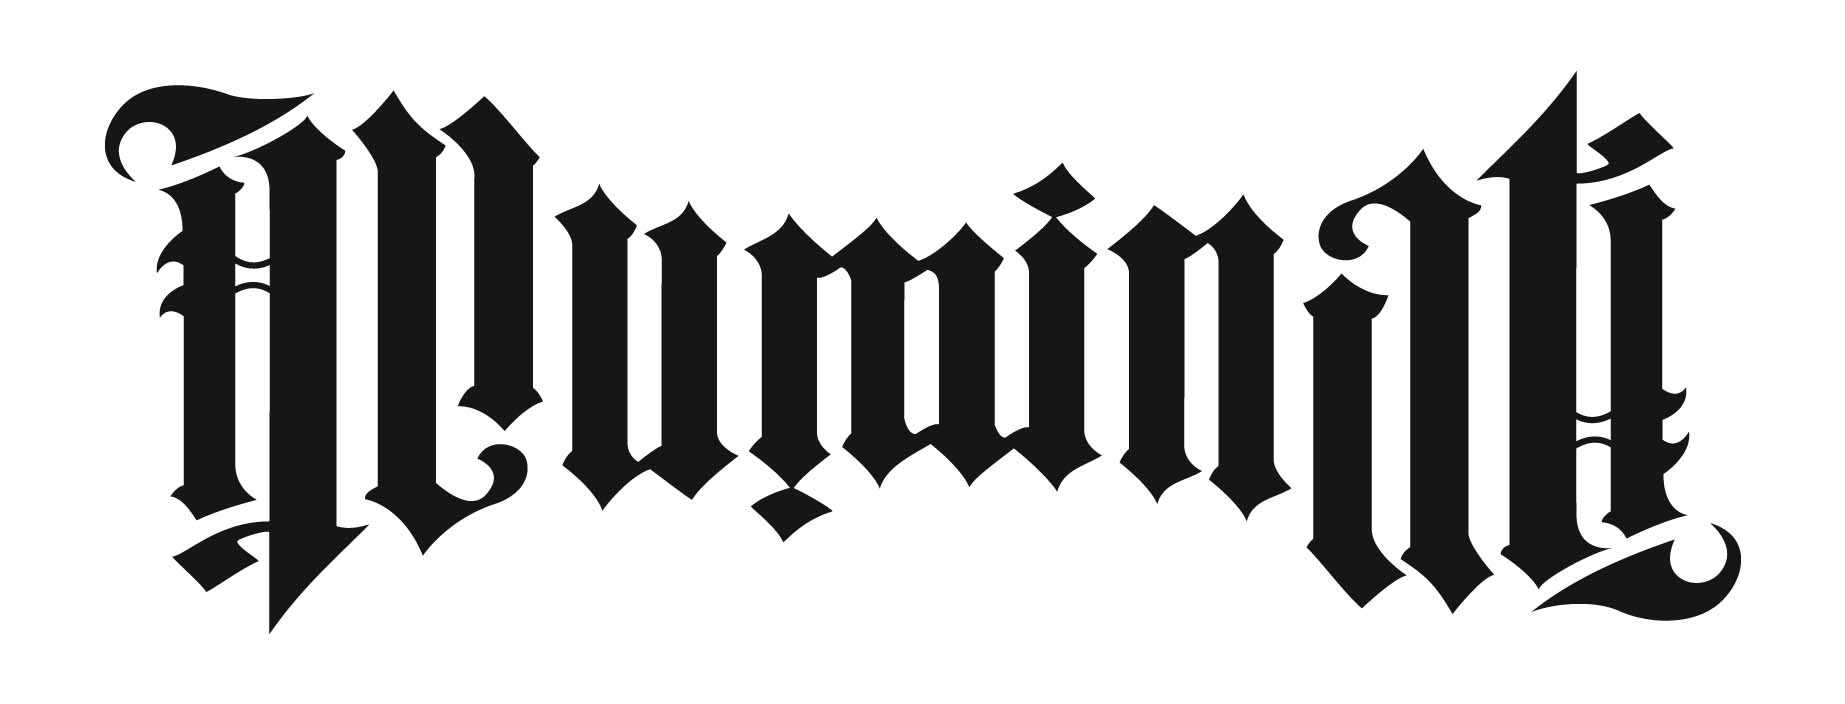 Angels+and+demons+ambigram+earth